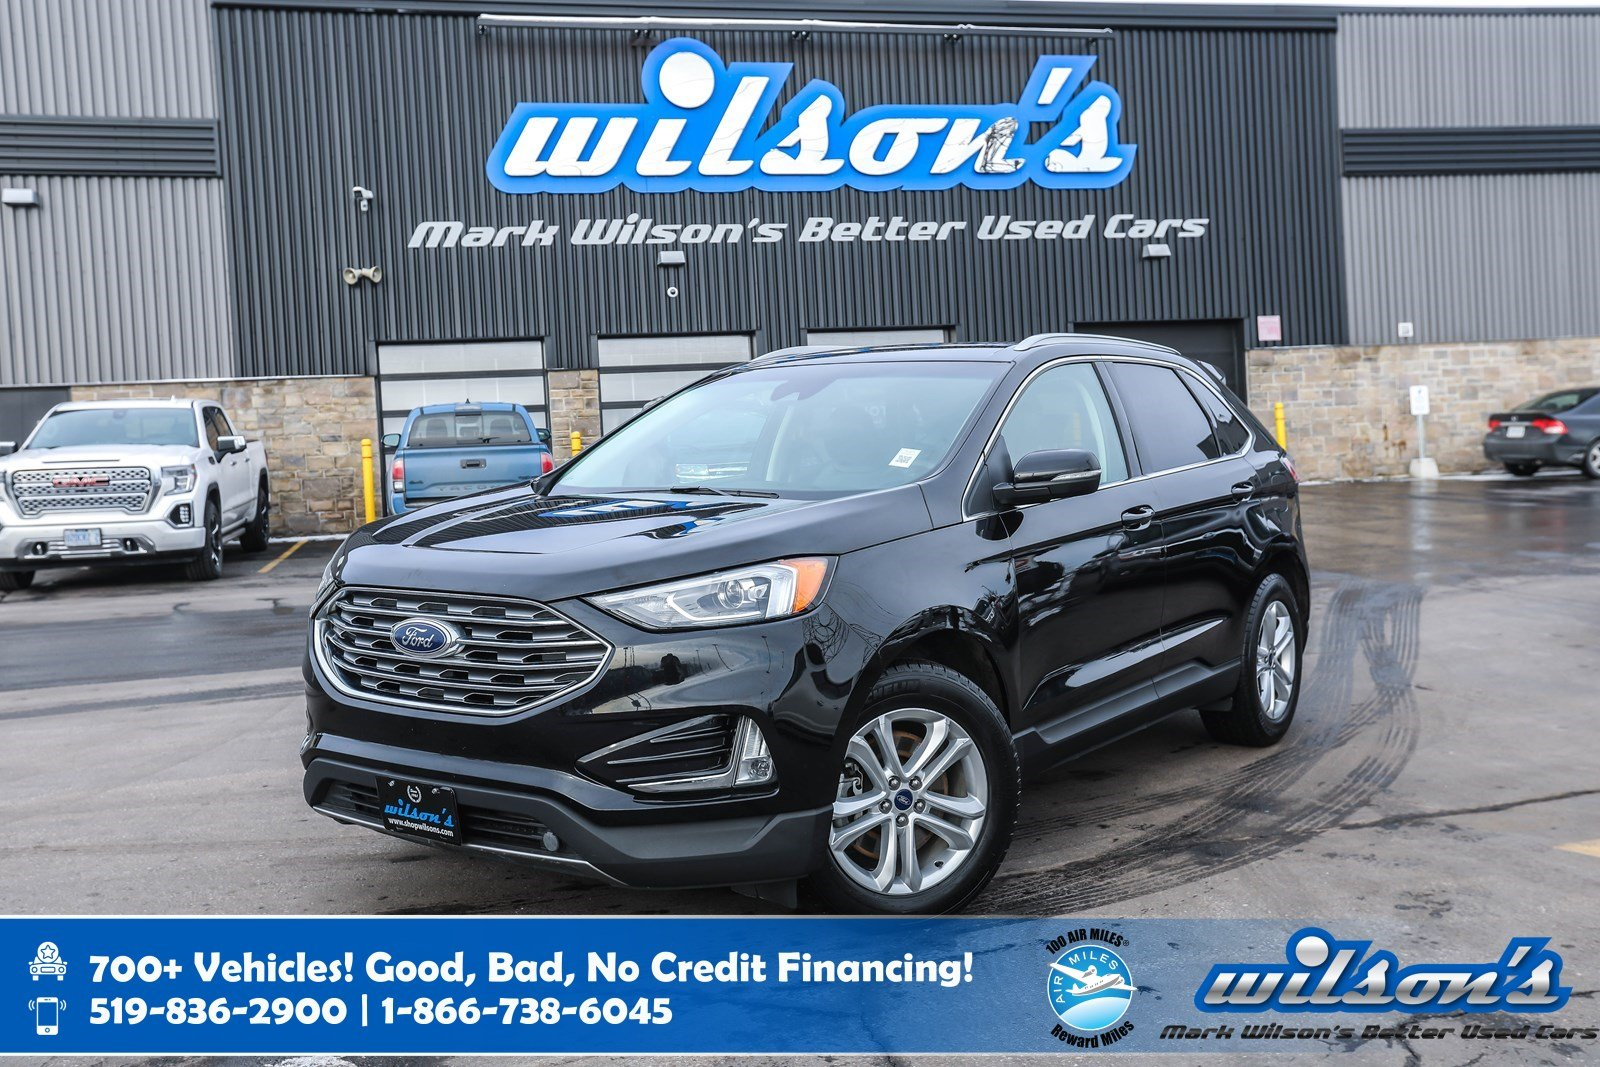 Certified Pre-Owned 2019 Ford Edge SEL AWD, Leather, Navigation, Heated Steering + Seats, Apple CarPlay + Android Auto and more!